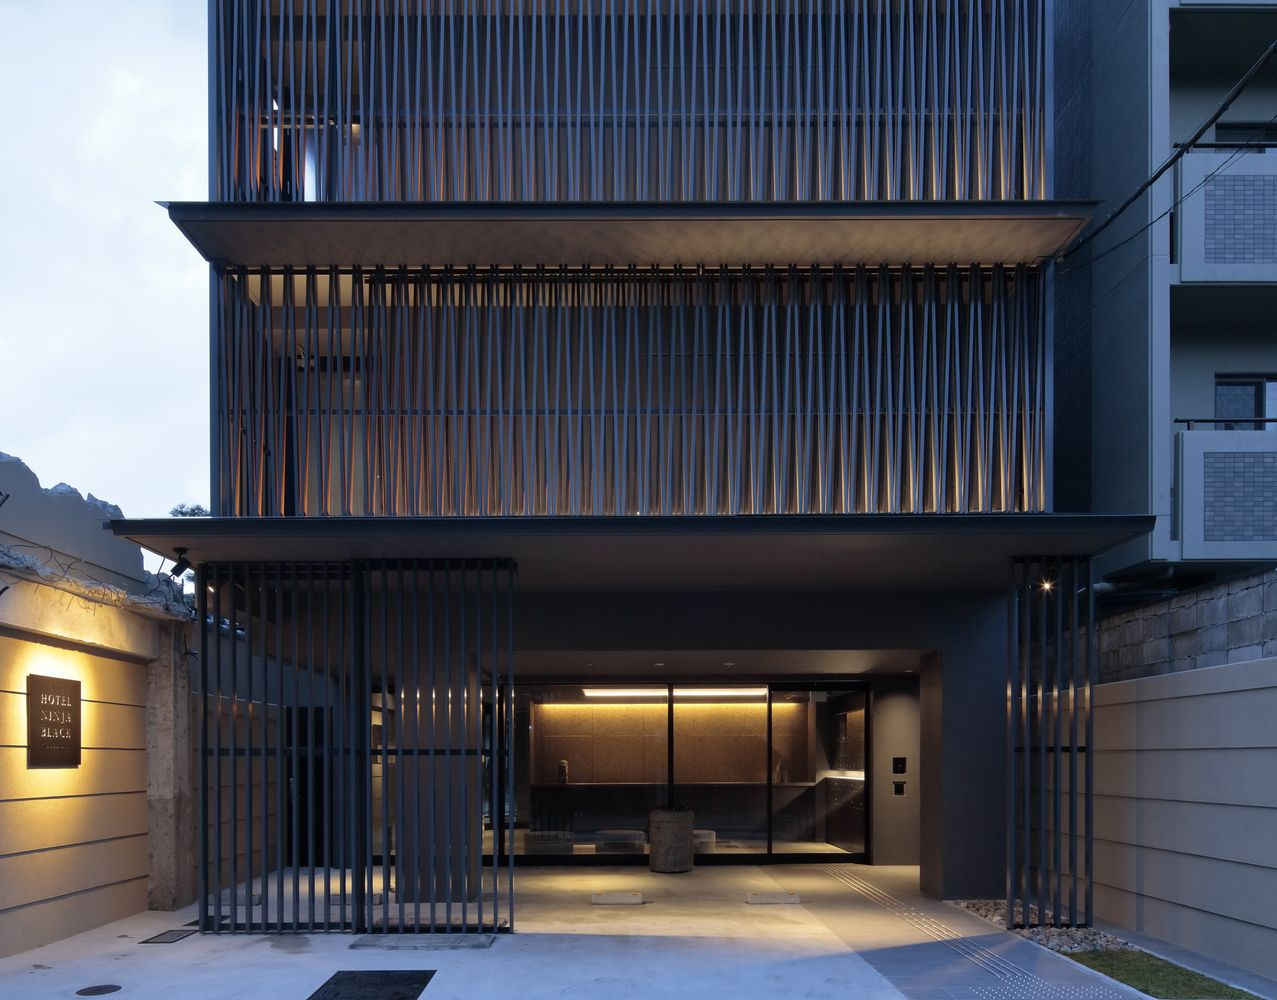 Gallery of best architectural projects of 2019 17